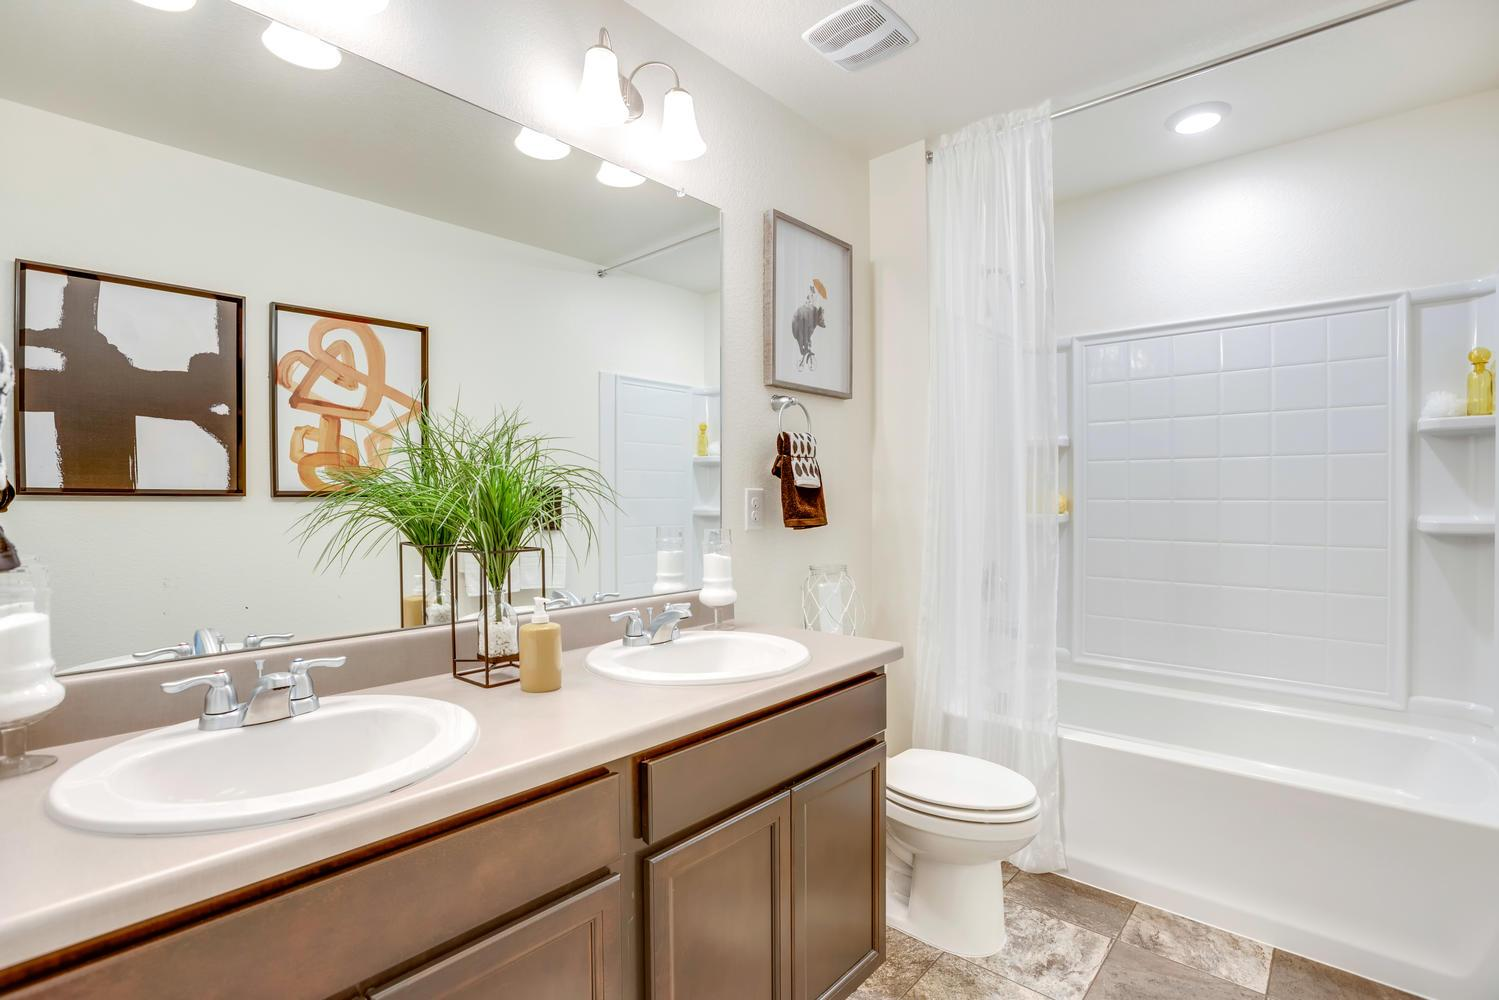 Bathroom featured in the GALEN By D.R. Horton in Boulder-Longmont, CO